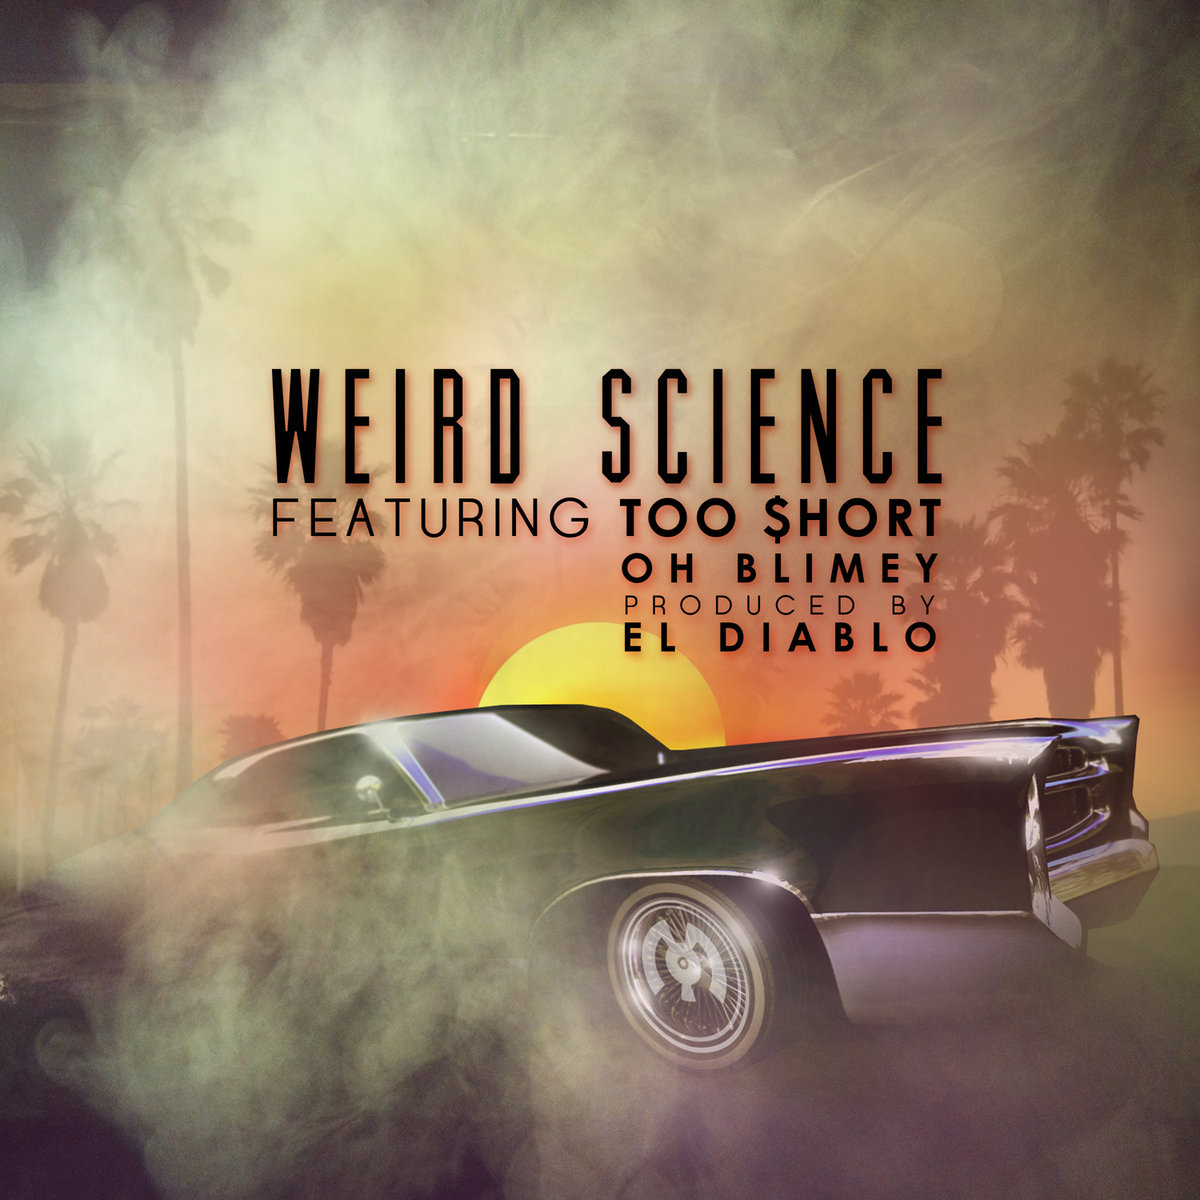 Too $hort, Oh Blimey, El Diablo - Weird Science (S.P.E.C.T.R.E. Remix) @ 'Weird Science' album (electronic, dubstep)